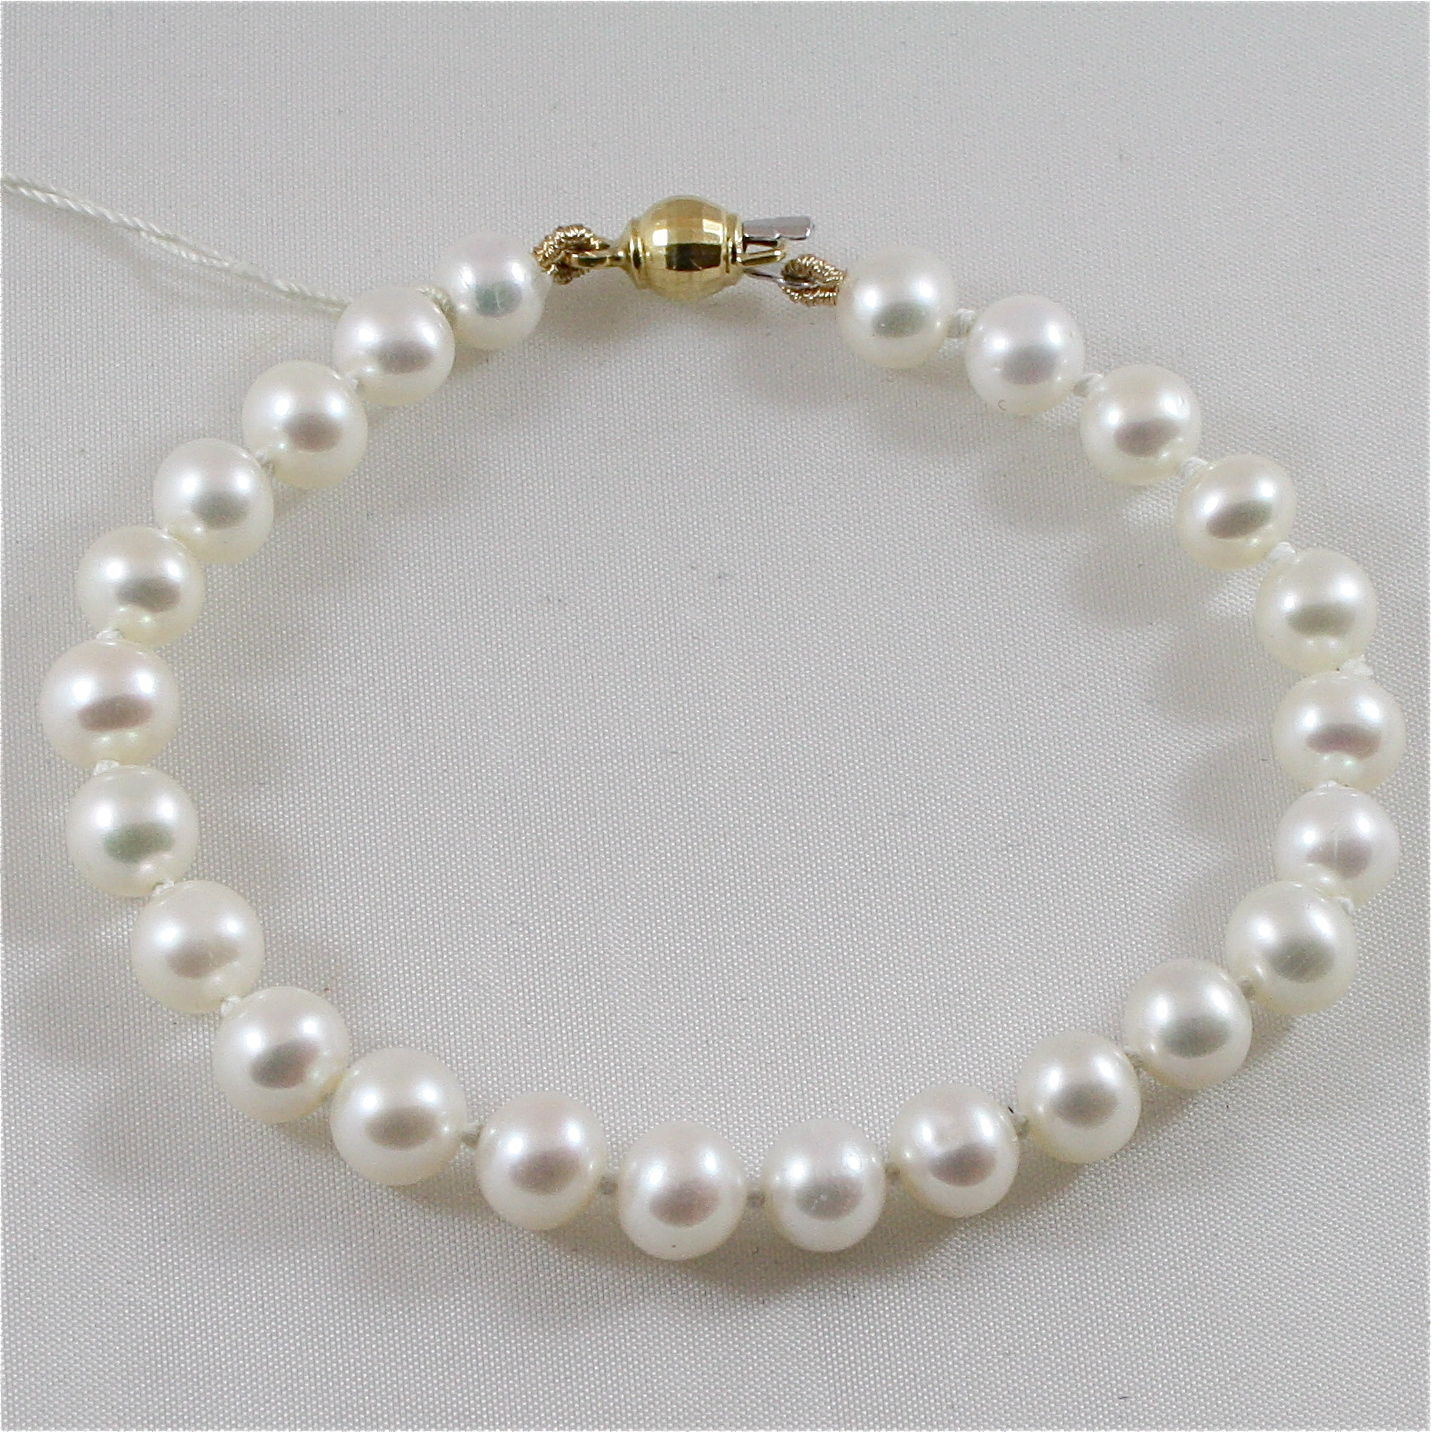 18K 750 YELLOW GOLD AND WHITE PEARLS (8MM DIAM.) BRACELET